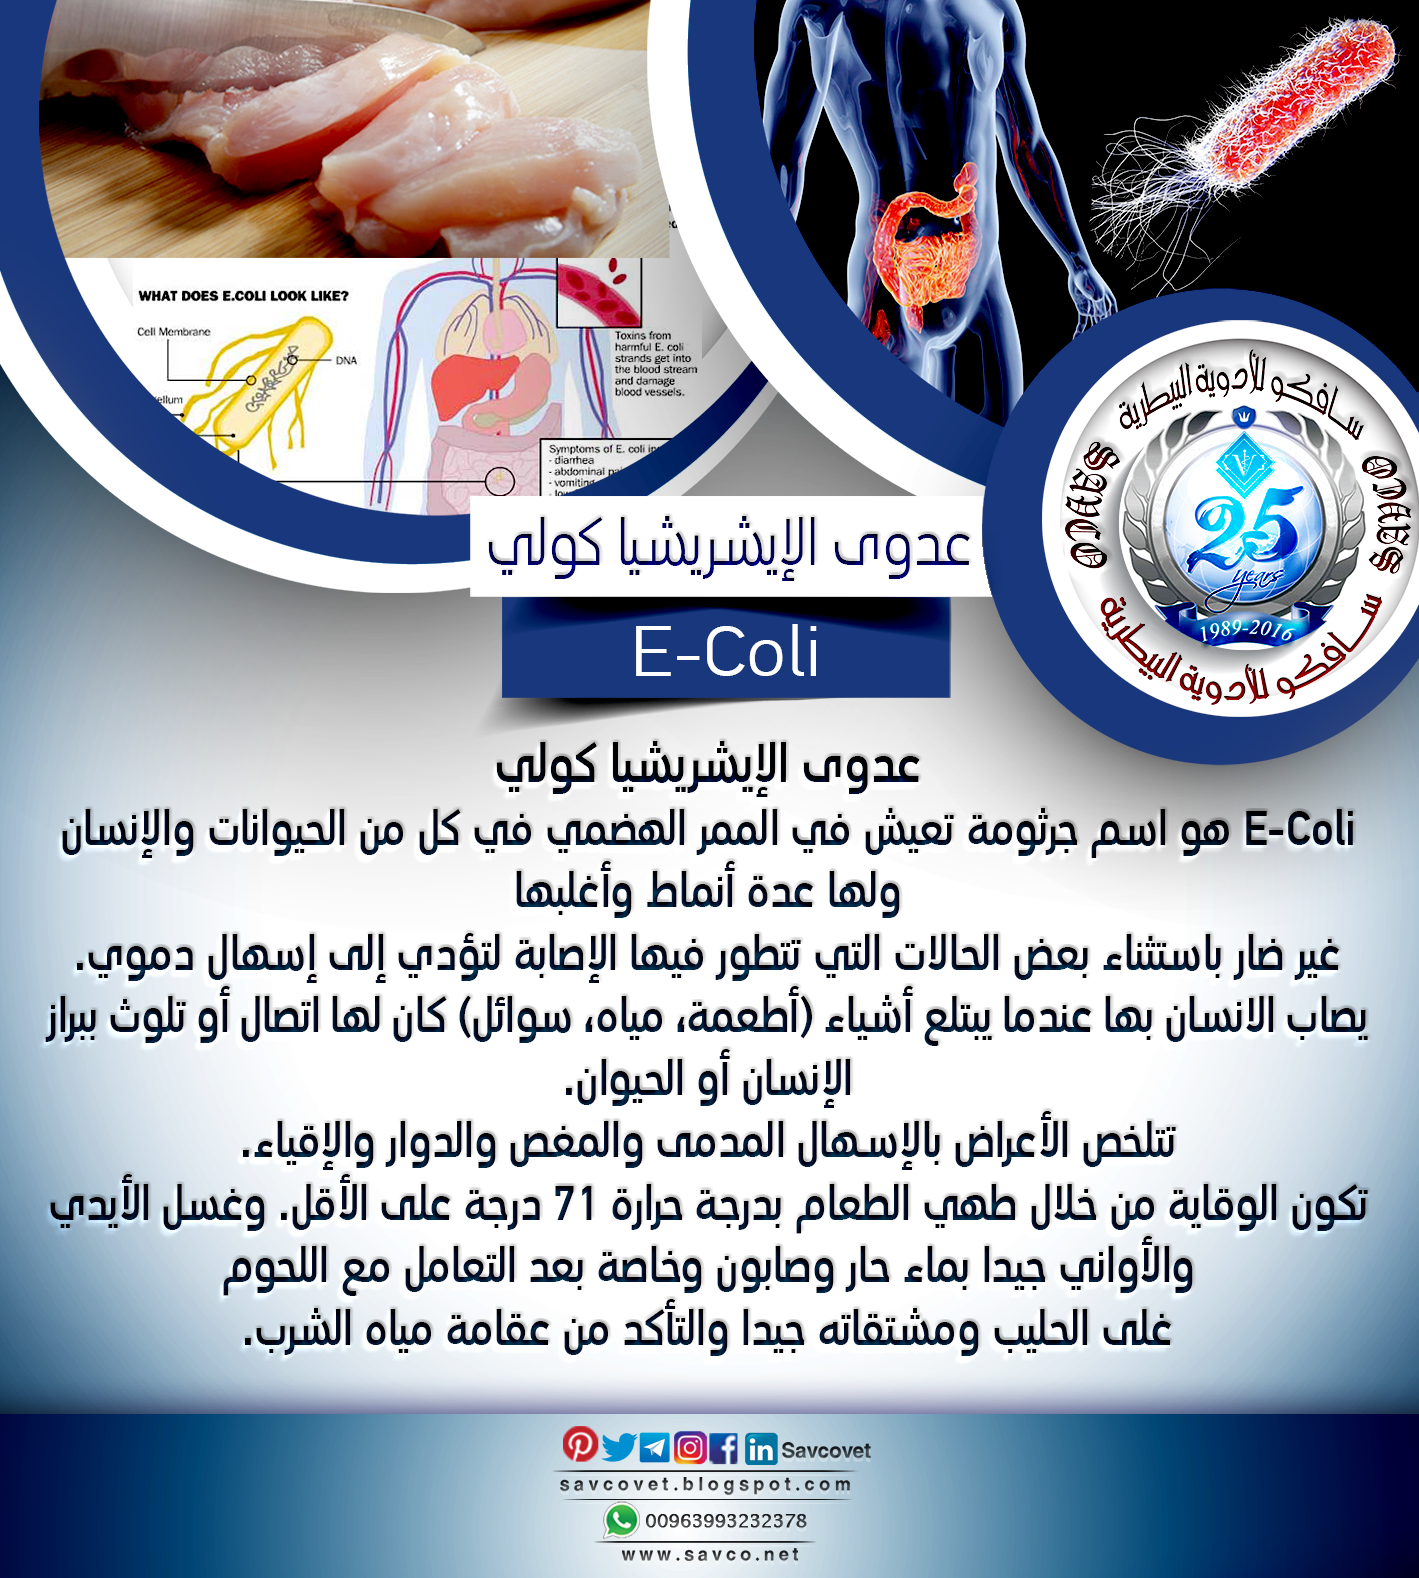 Pin By Savco For Veterinary Medicines On أمراض مشتركة Frosted Flakes Cereal Box Frosted Flakes Cereal Cereal Box